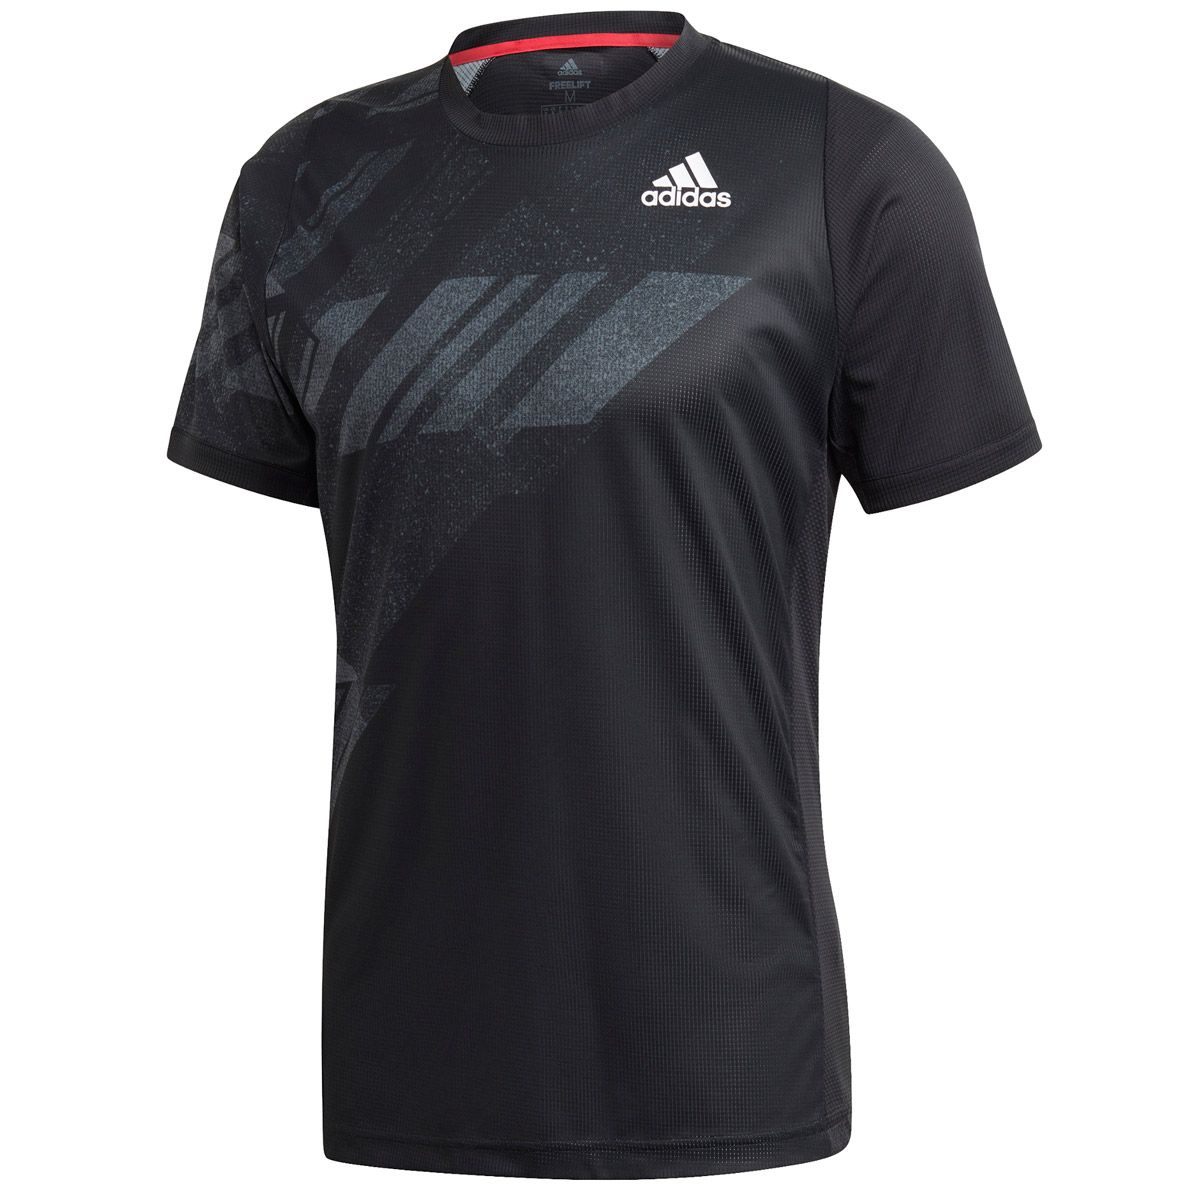 adidas Freelift Printed Tennisshirt